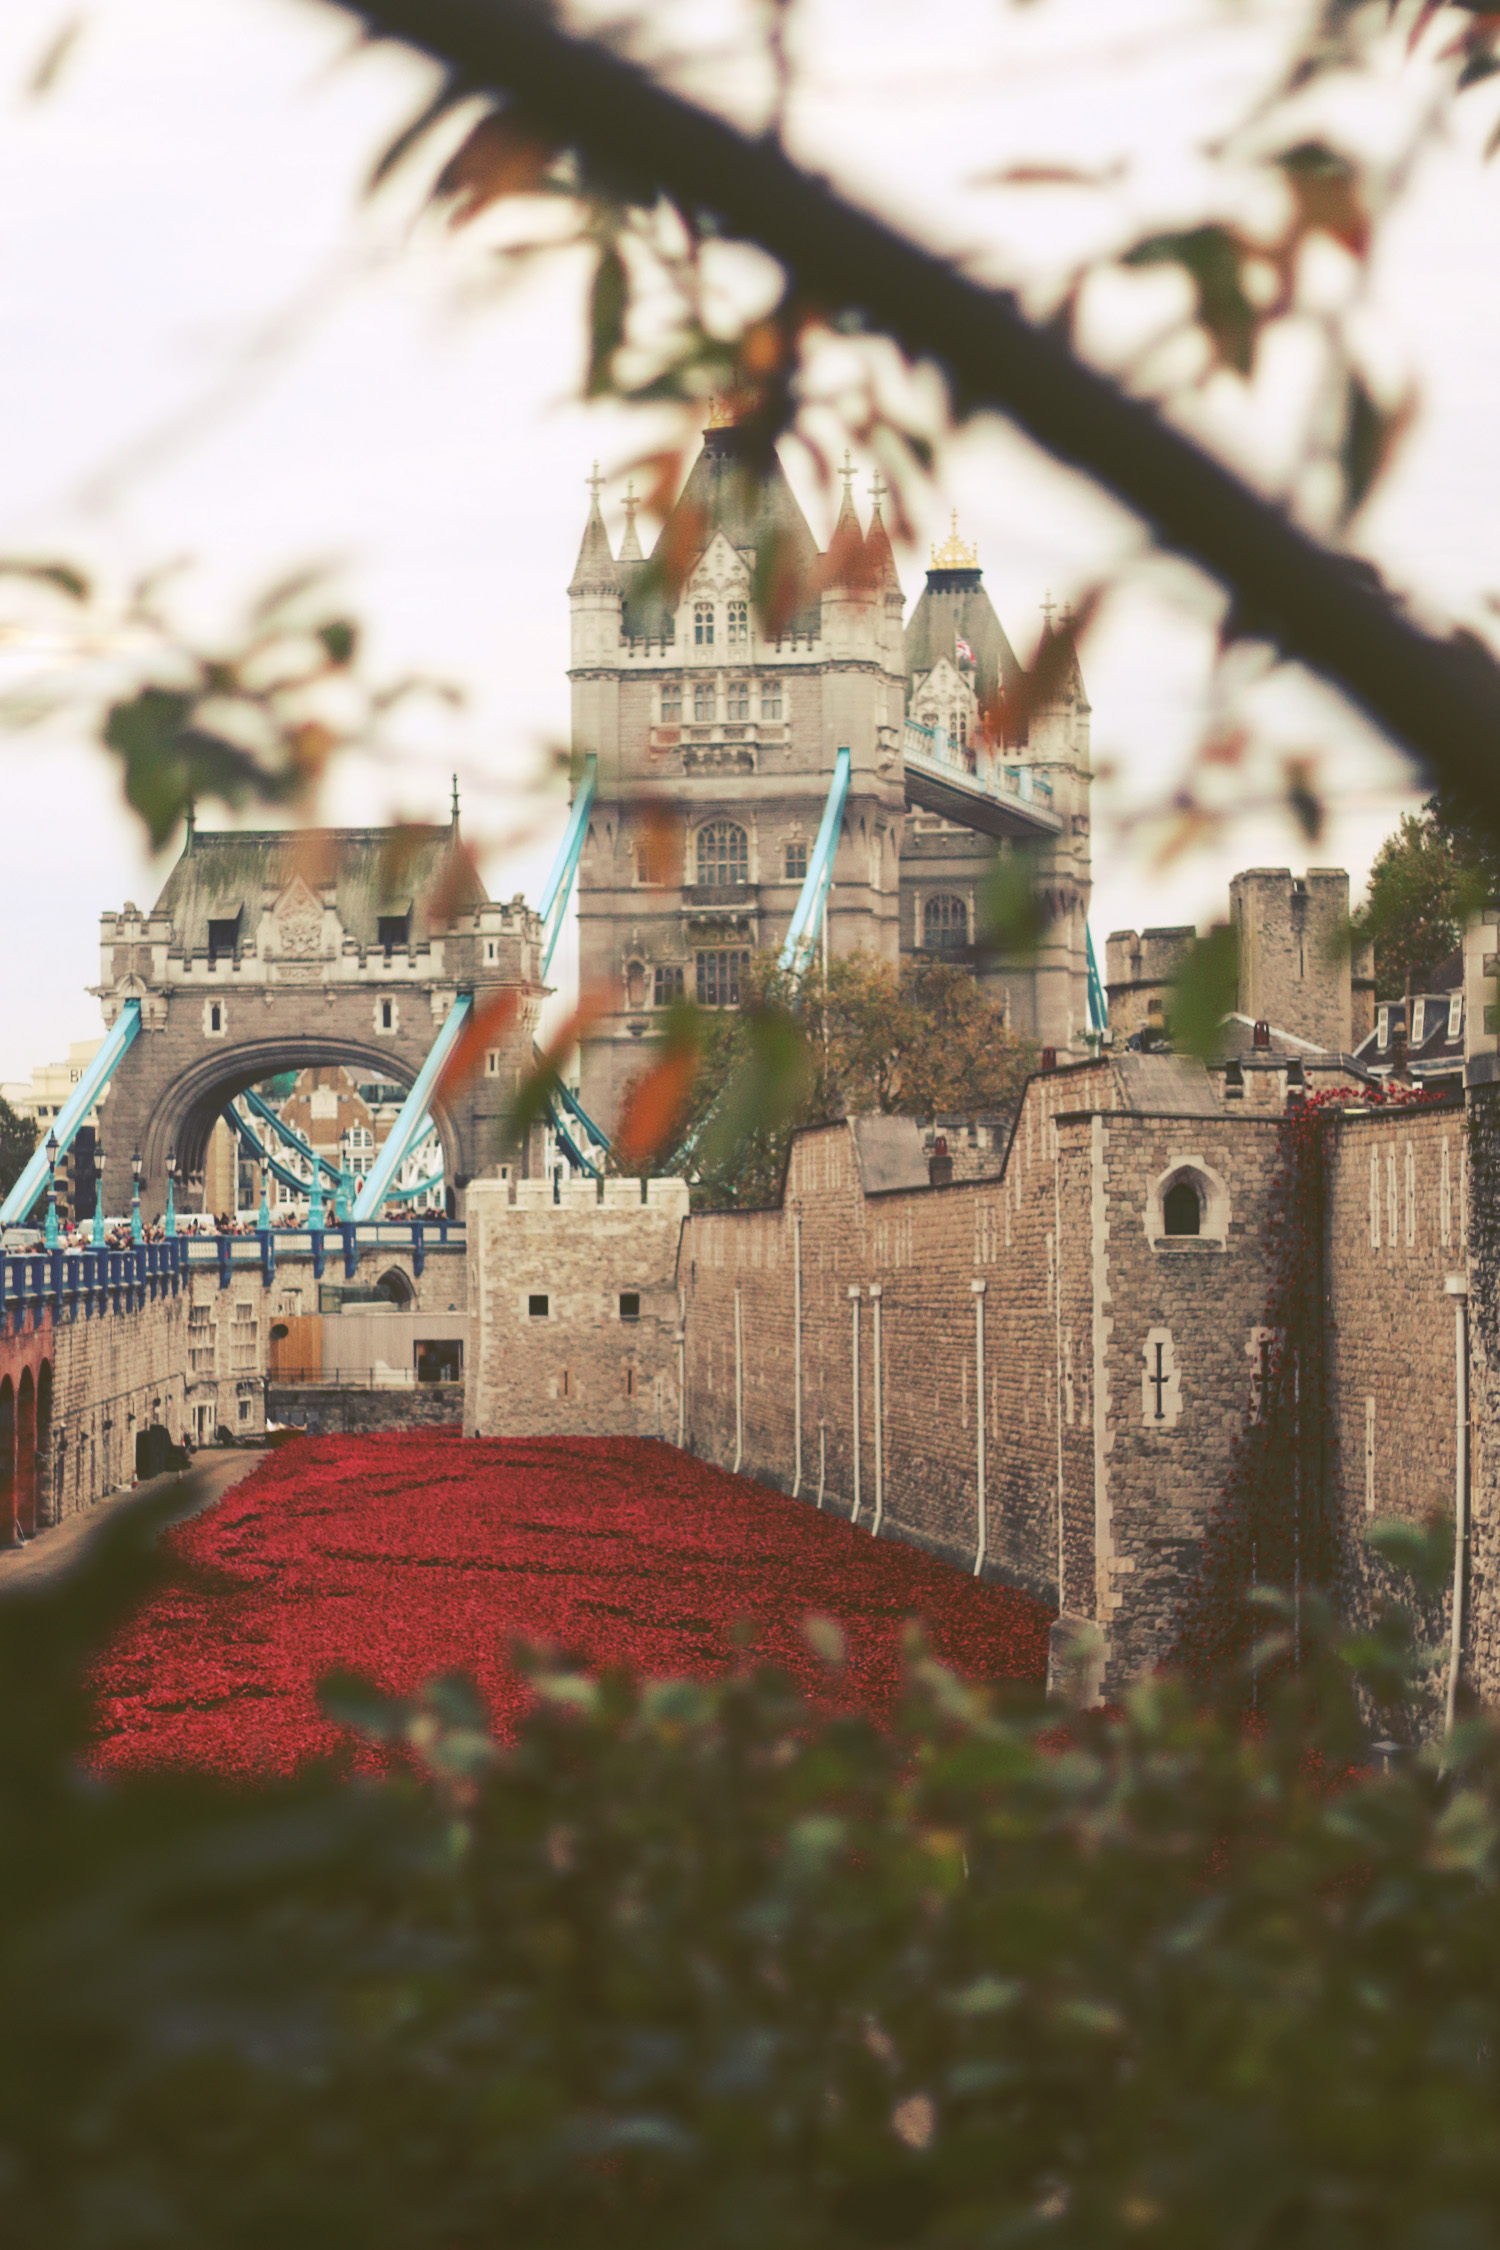 towerpoppies